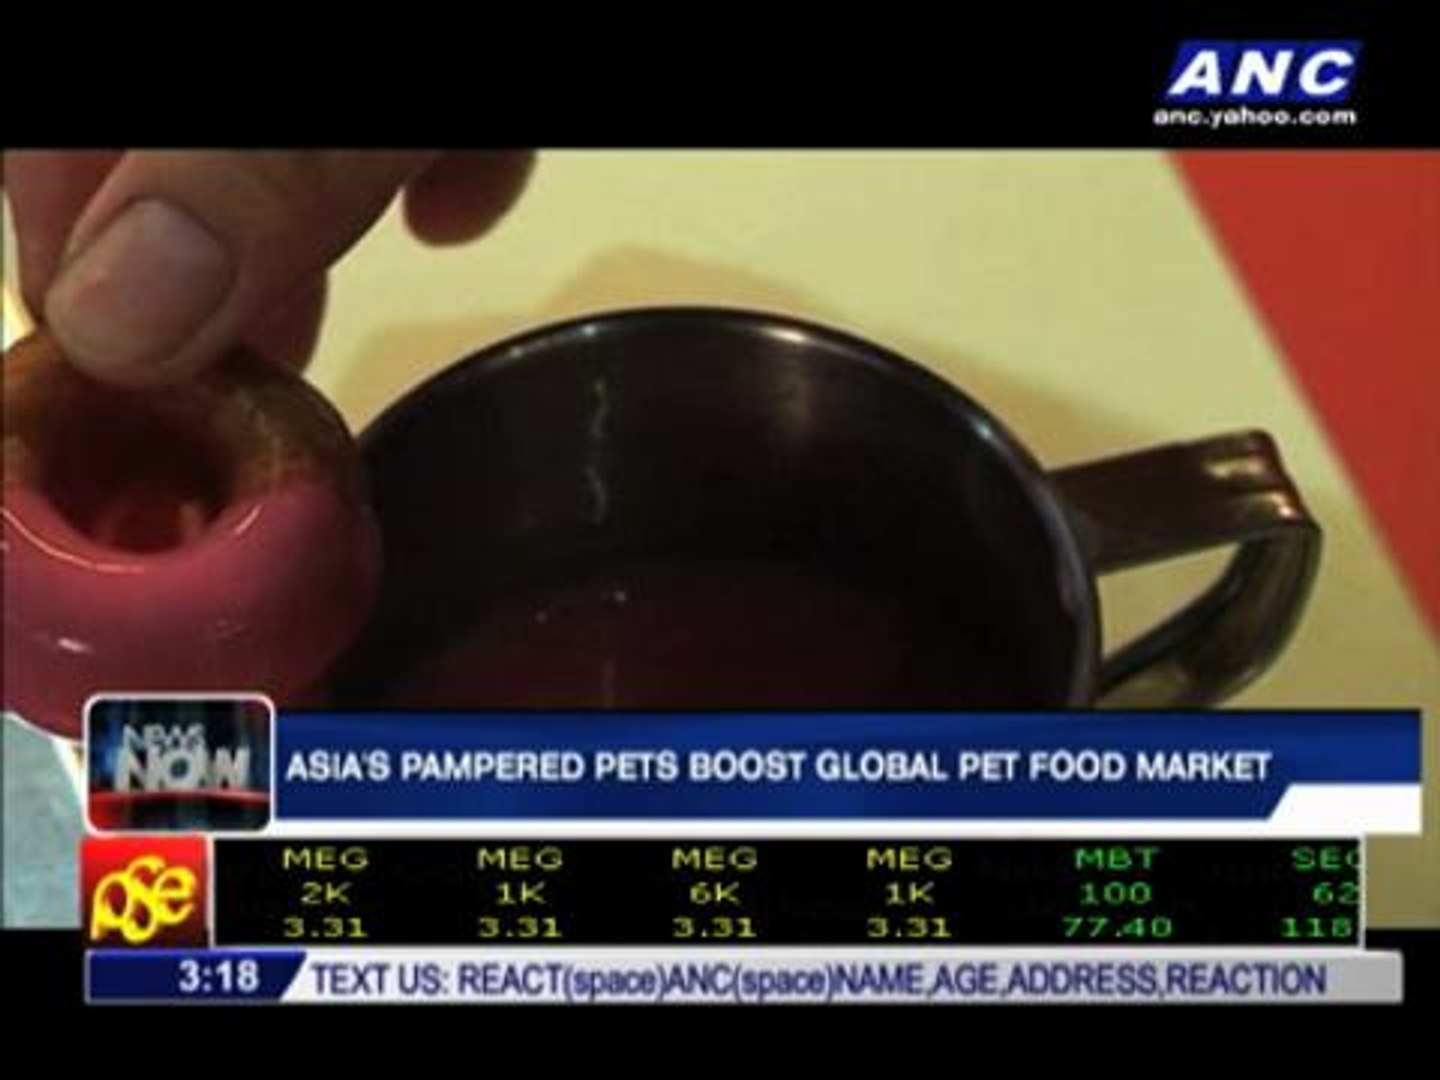 Asia's pampered pets boost global pet food market